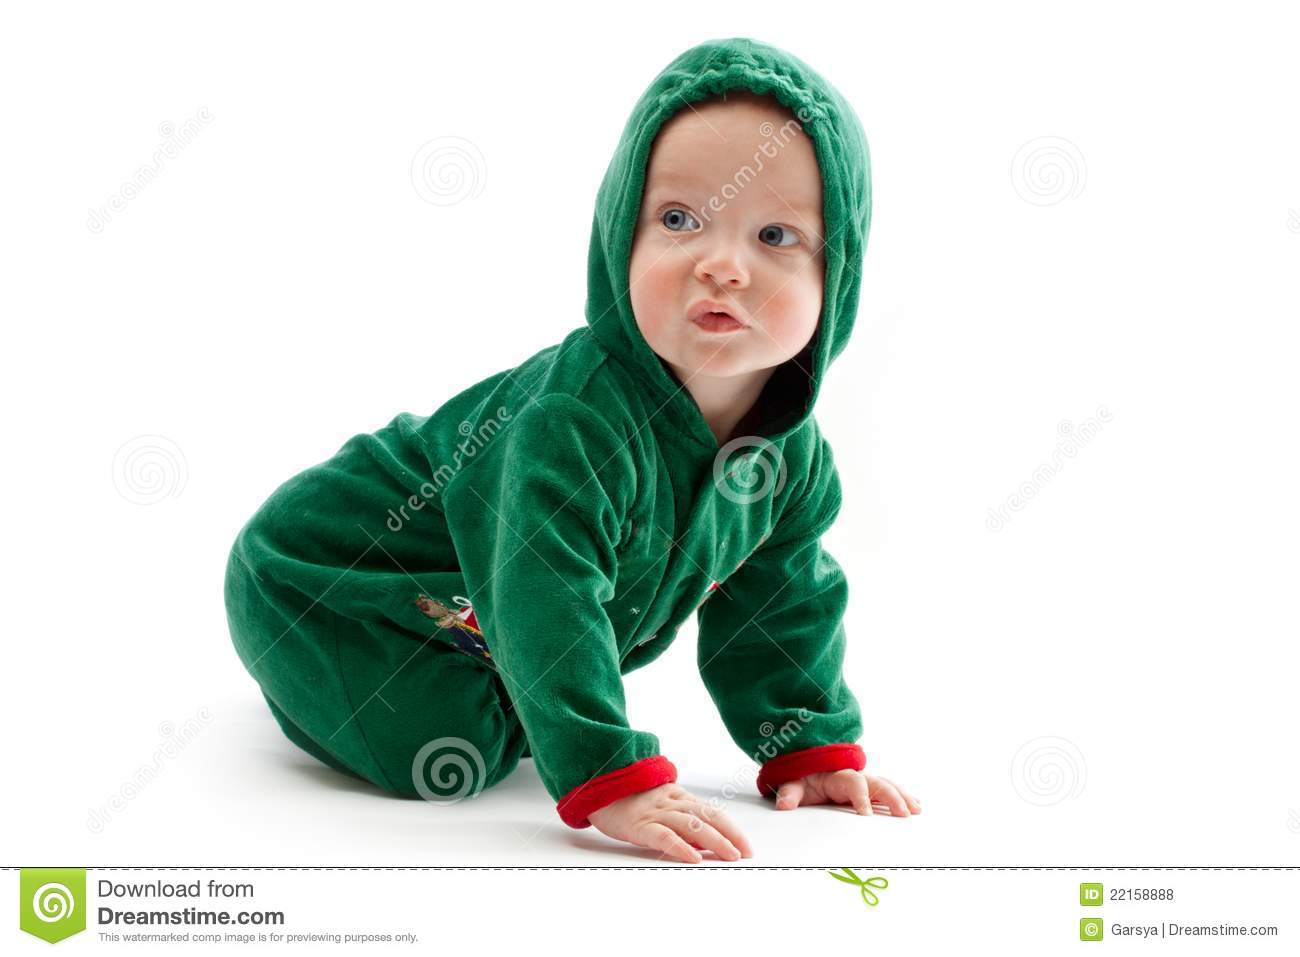 Download comp  sc 1 st  Dreamstime.com & Baby in elf-costume stock photo. Image of child celebrate - 22158888